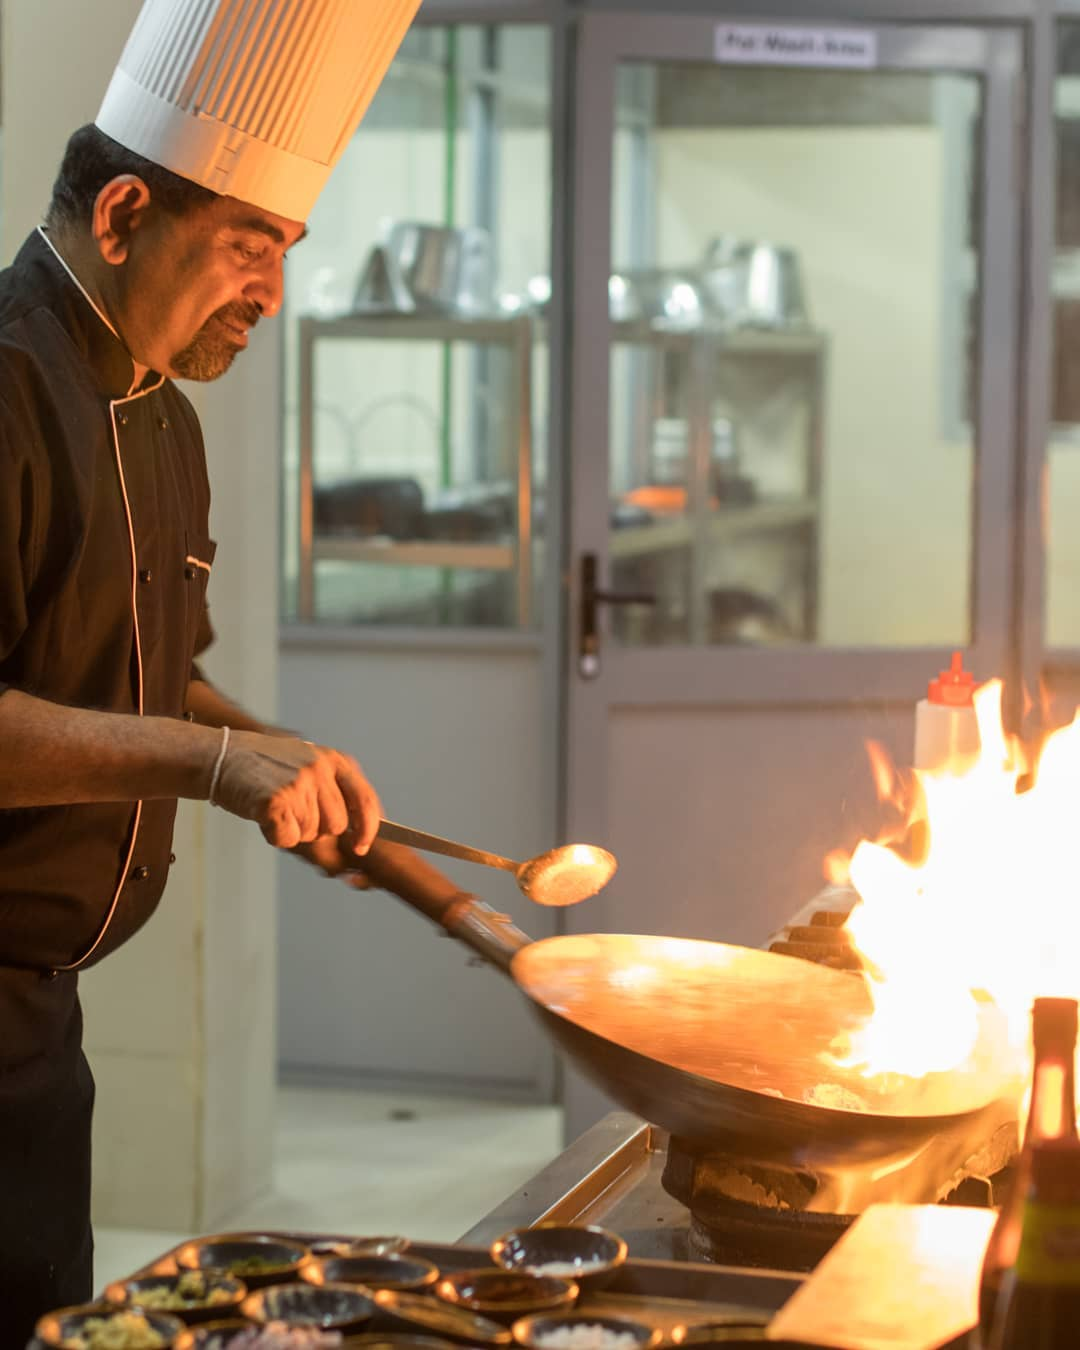 We are excited to launch Karpaha Sands cooking classes with Chef Anura